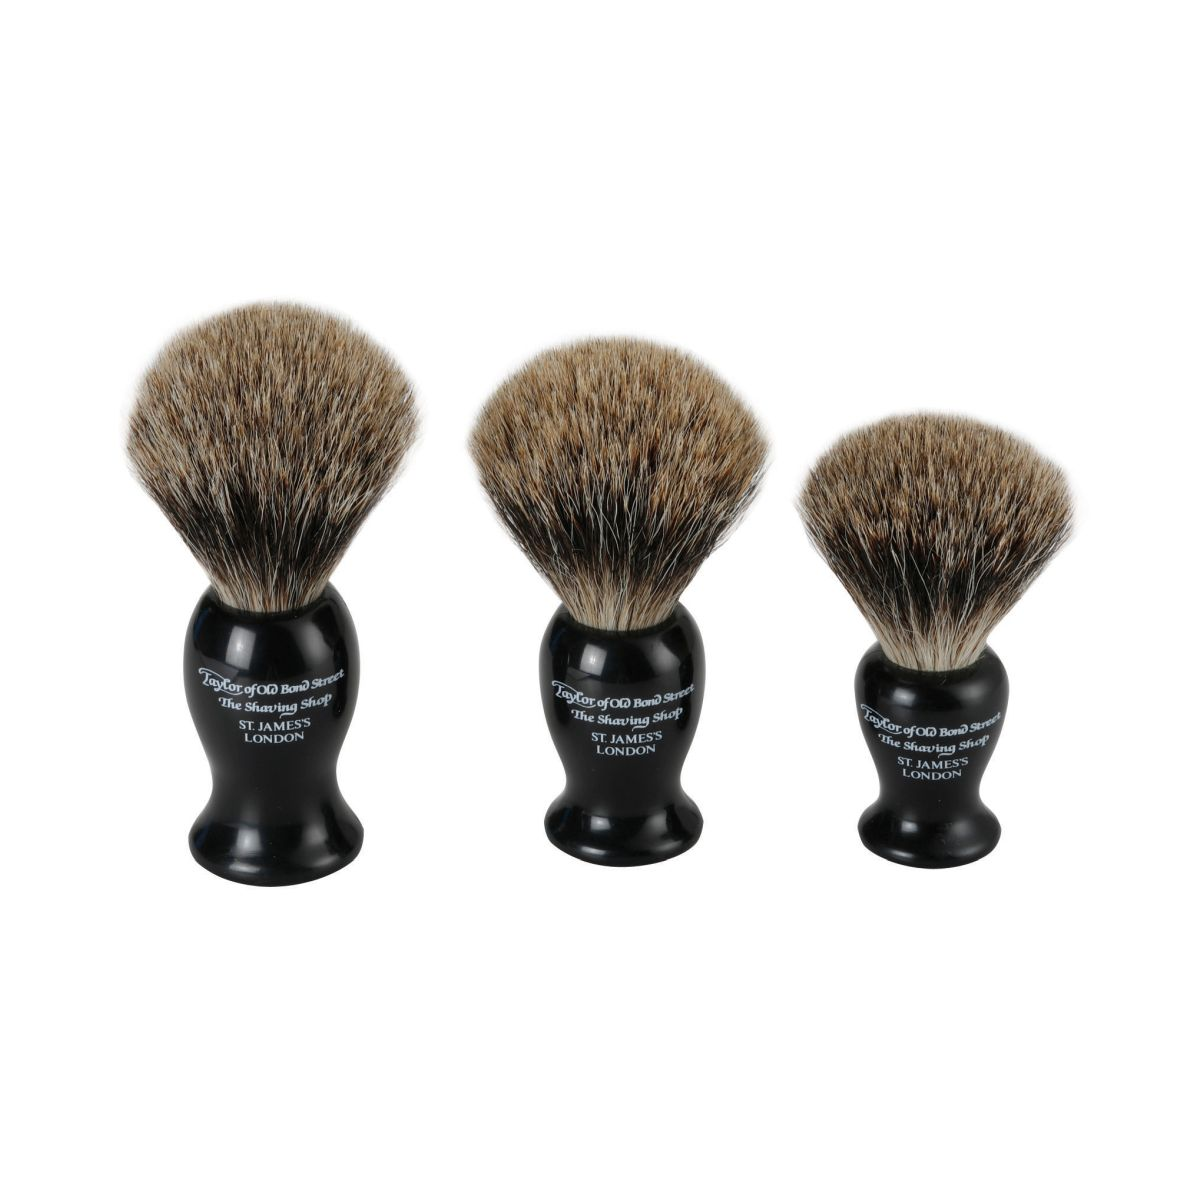 660 Black lms - Taylor of Old Bond Street Best Badger brushes - 660BL